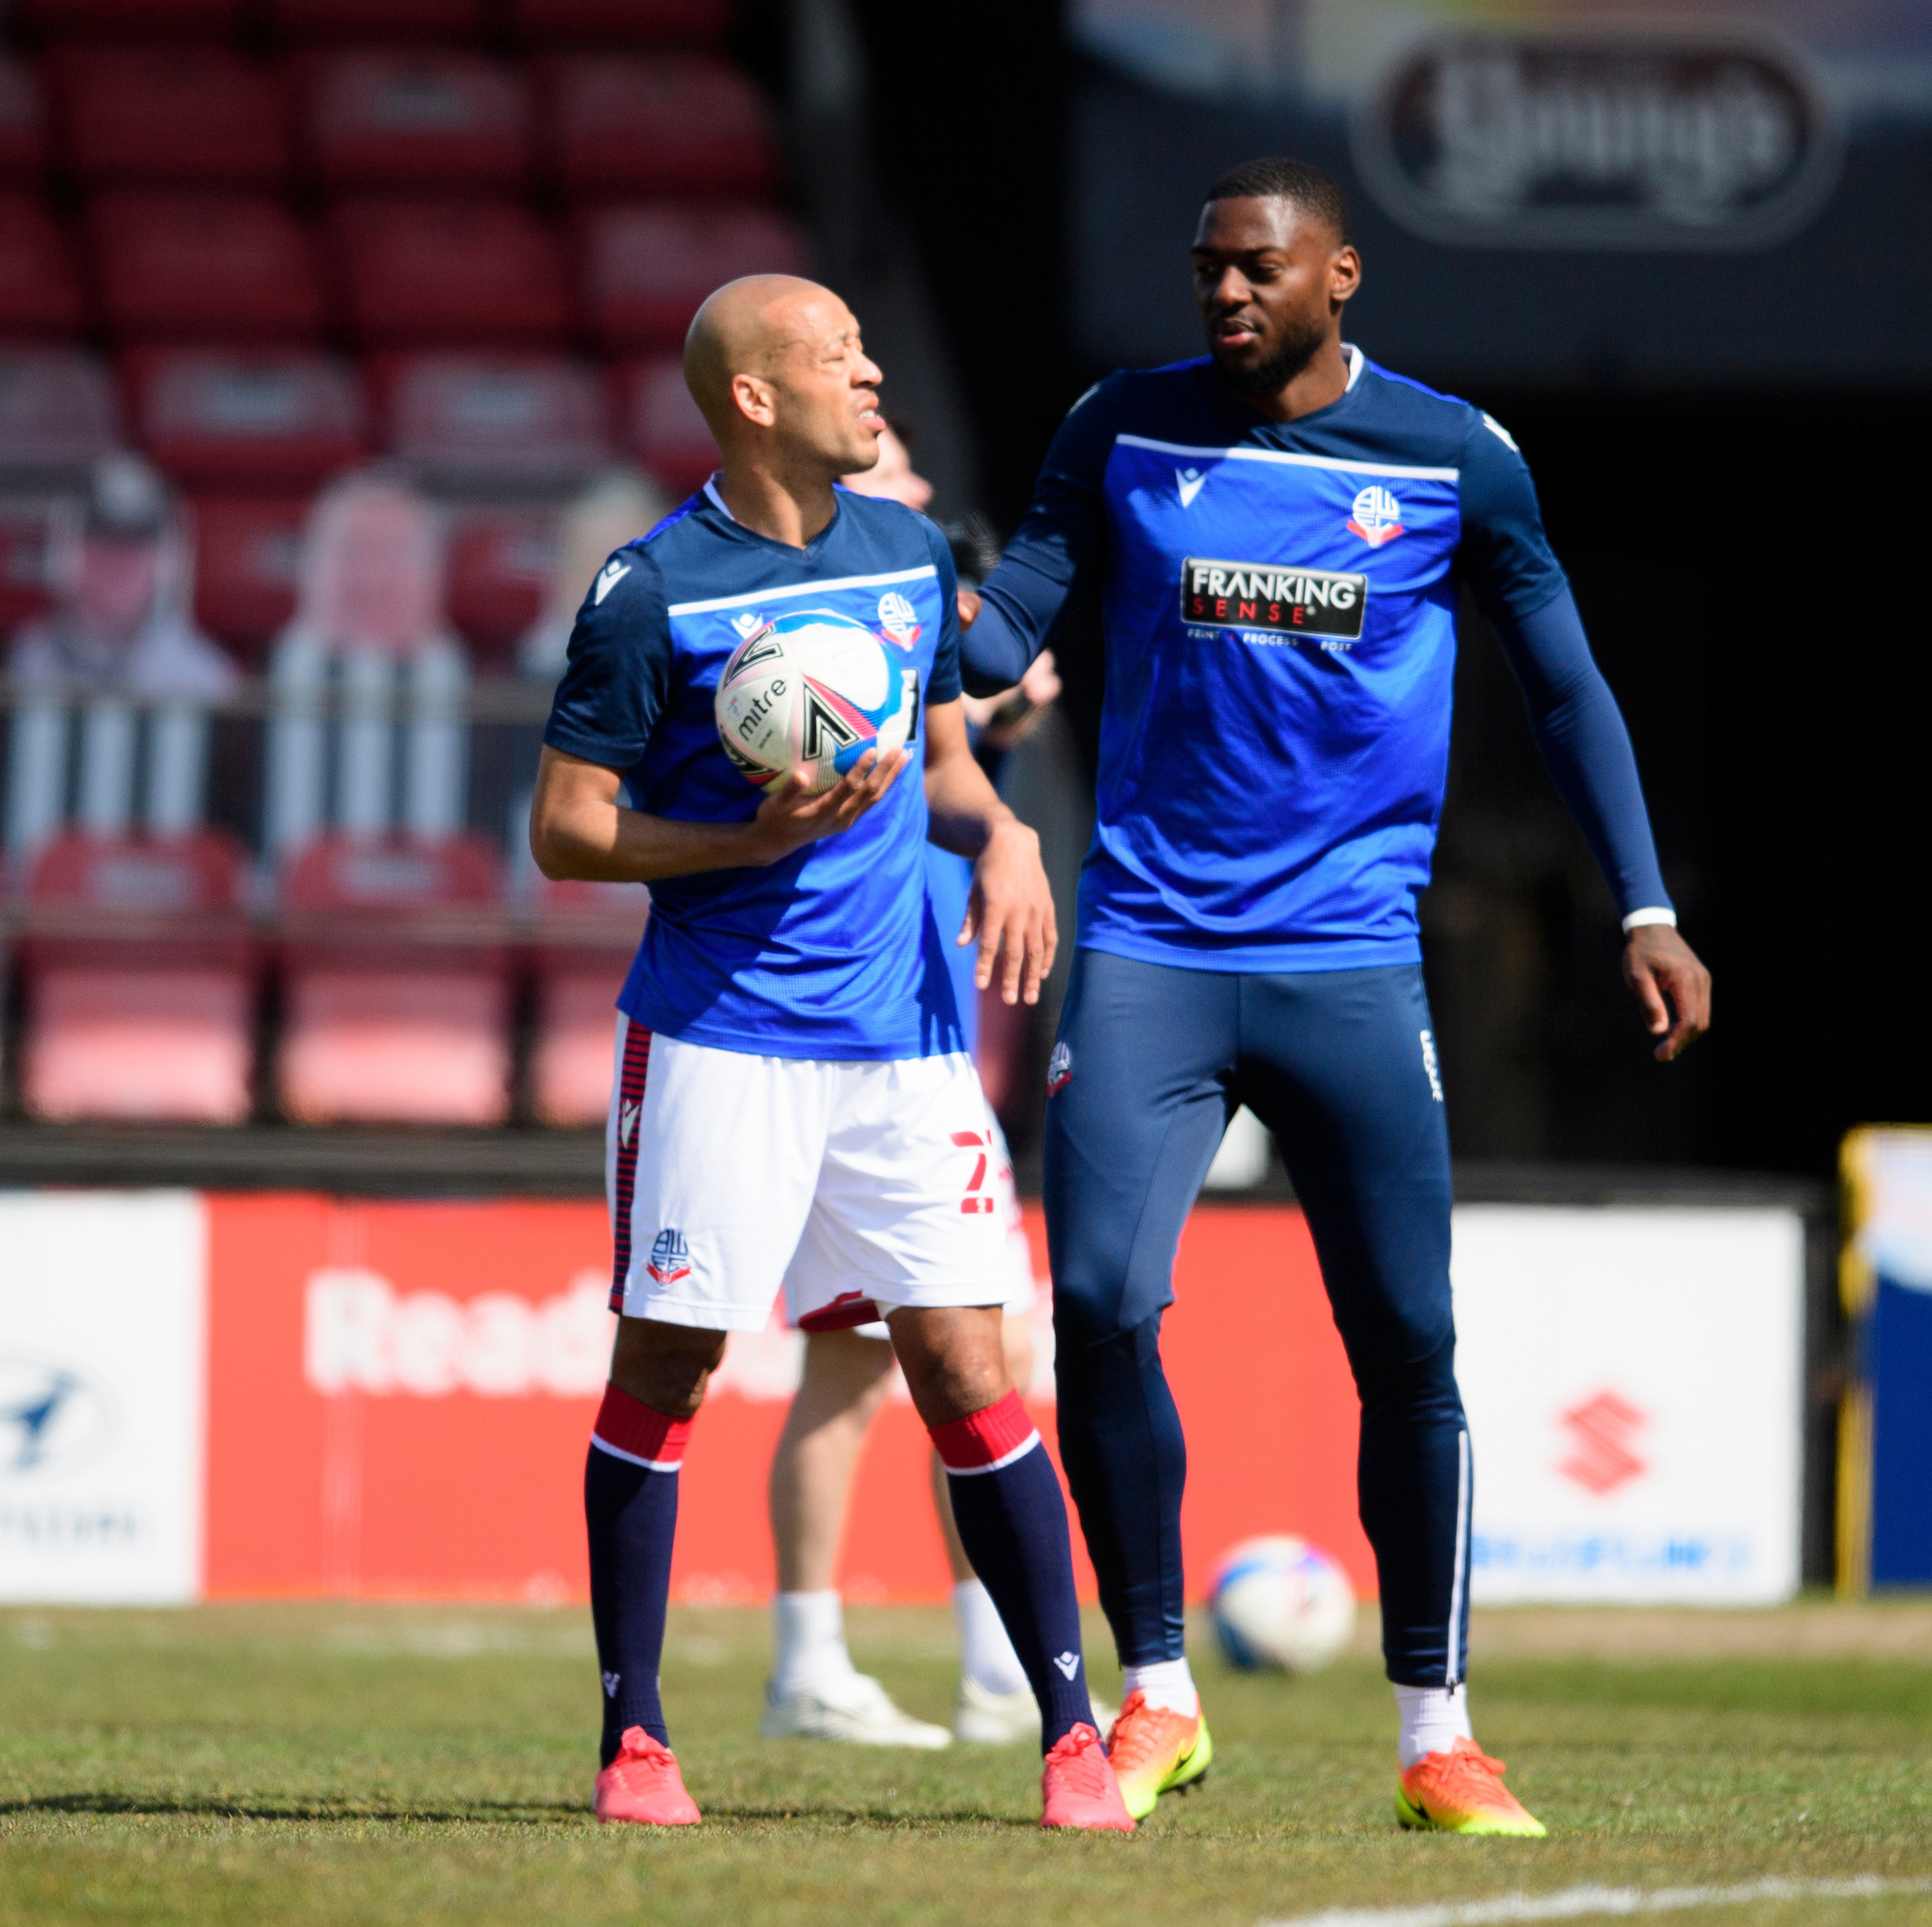 Bolton Wanderers' Alex Baptiste says Ricardo Santos can be best defender in League One